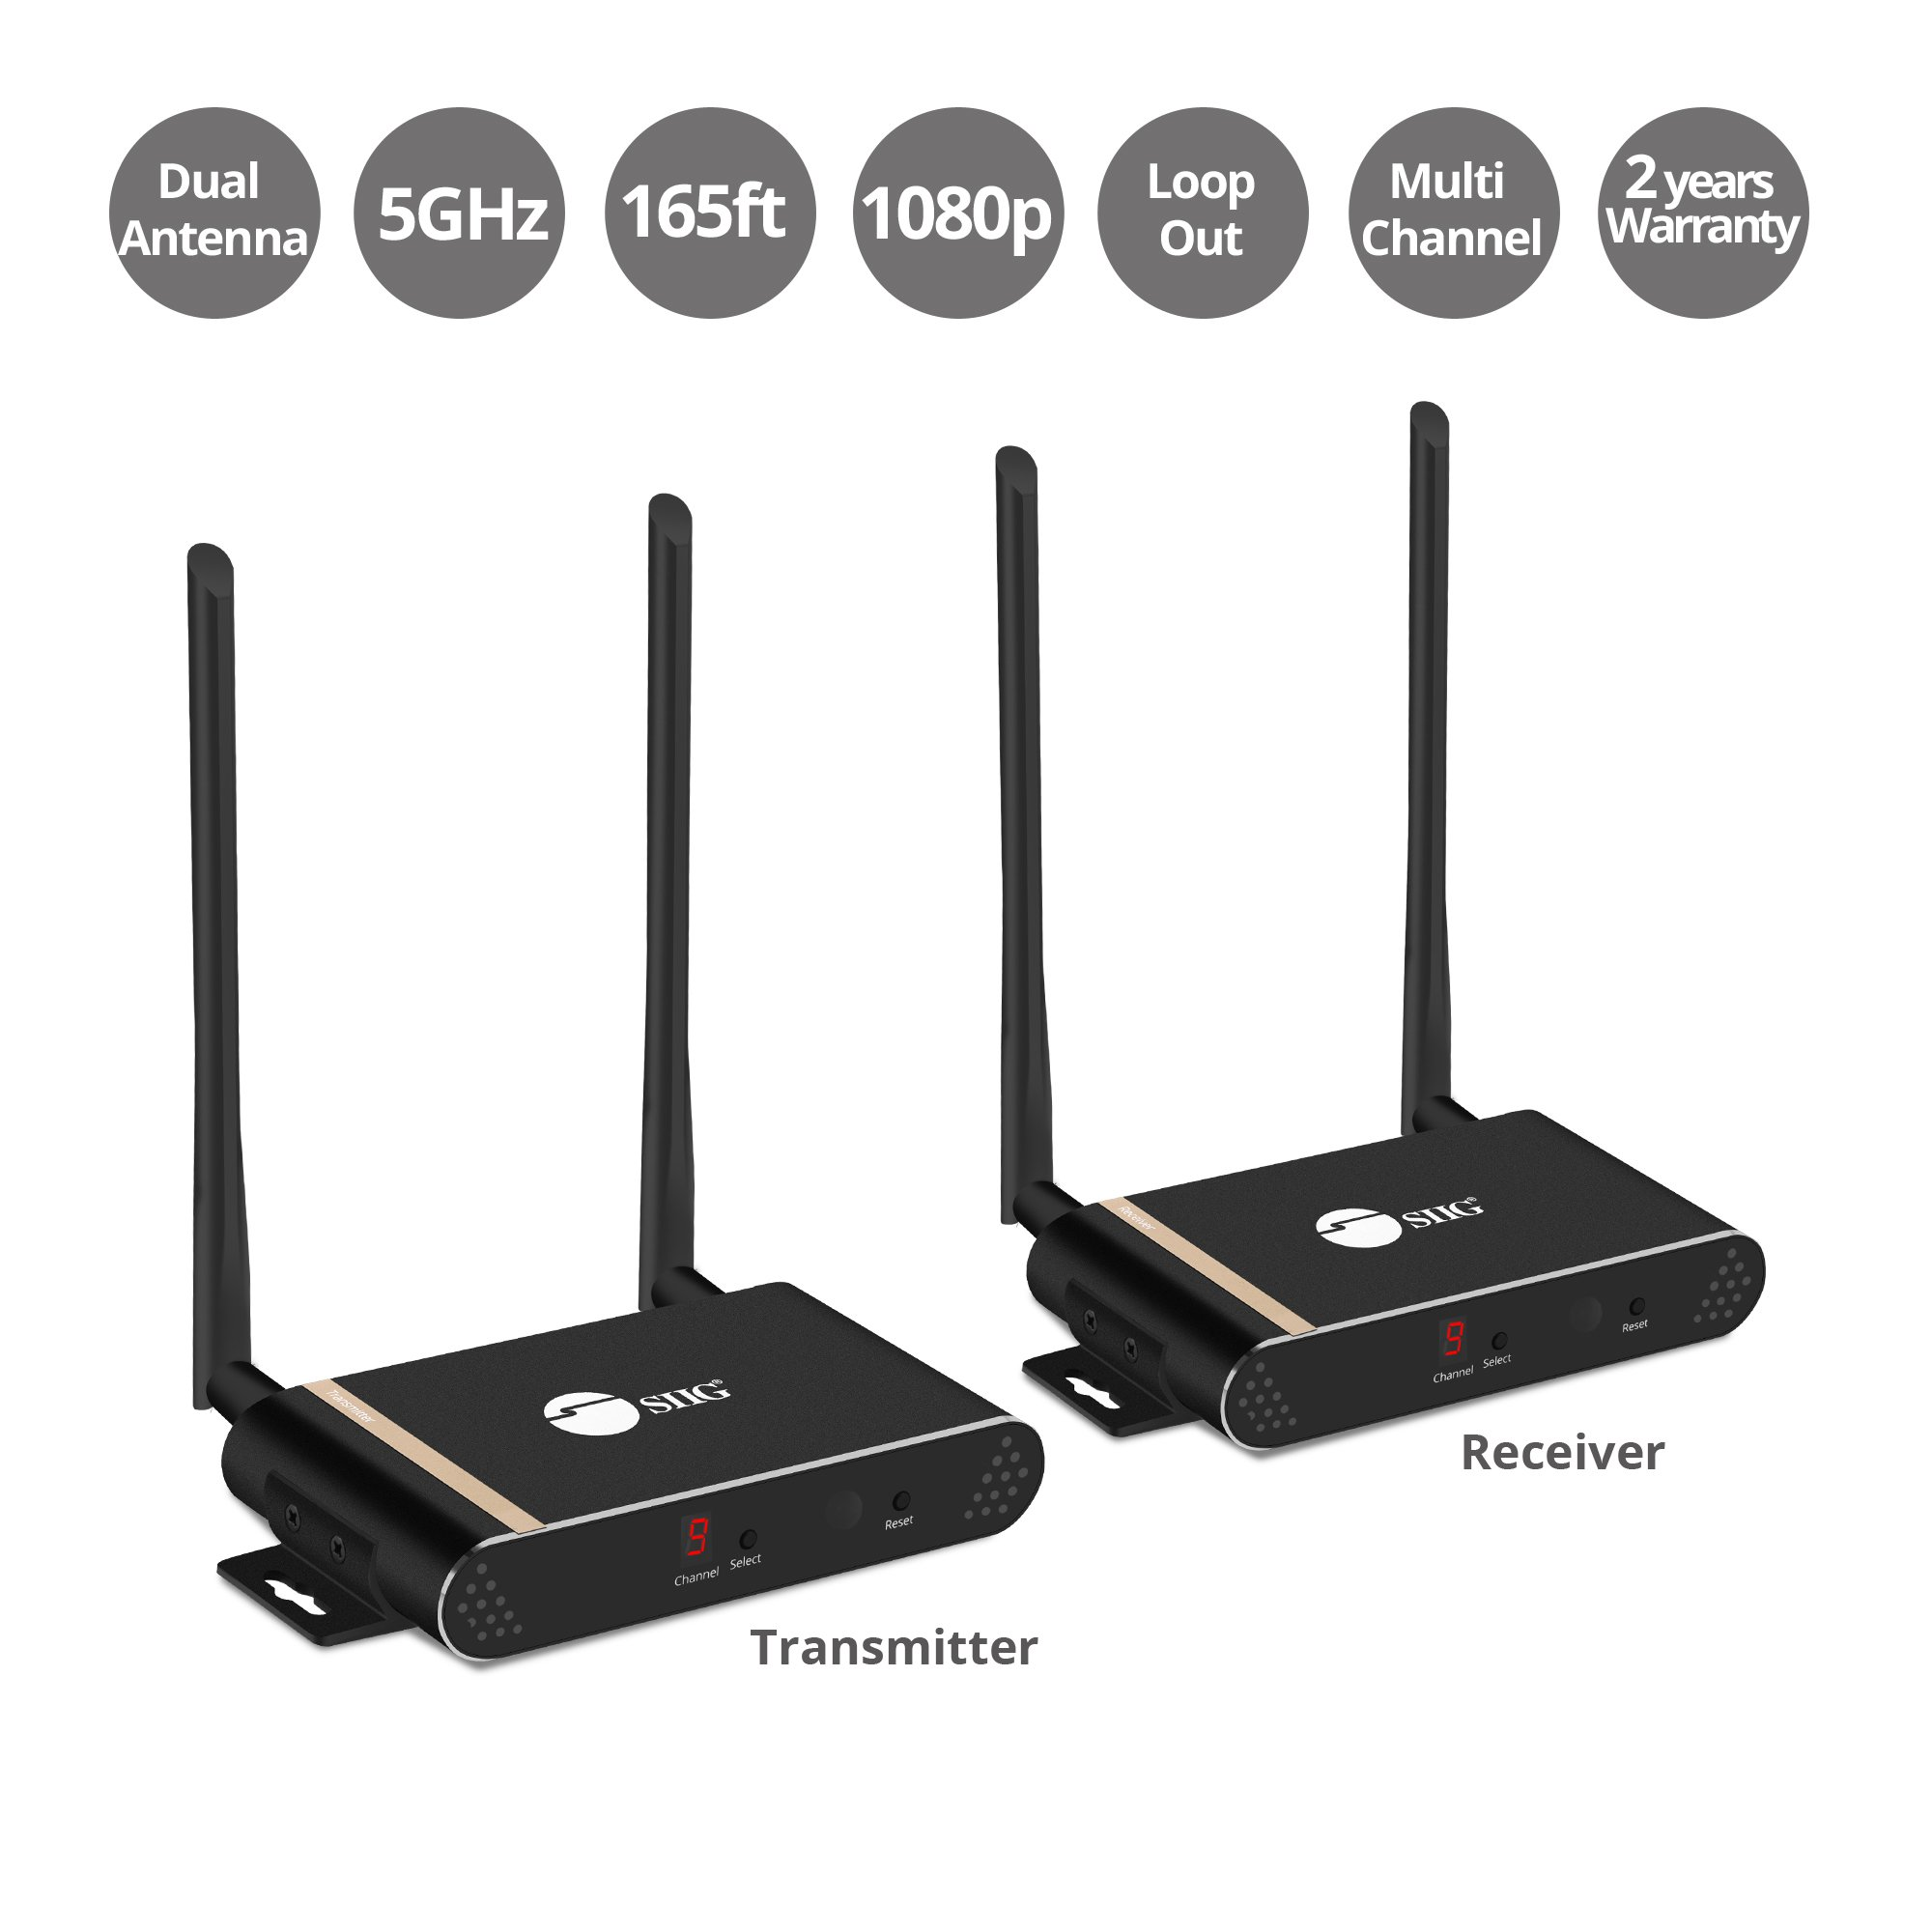 SIIG Dual Antenna Wireless Multi-Channel Expandable HDMI Extender with Loop-out Kit - 165ft/50m - up to 2-Transmitters x 2 Receivers Matrix - 10 Channels - up to 1080p Full HD with IR & Remote Control